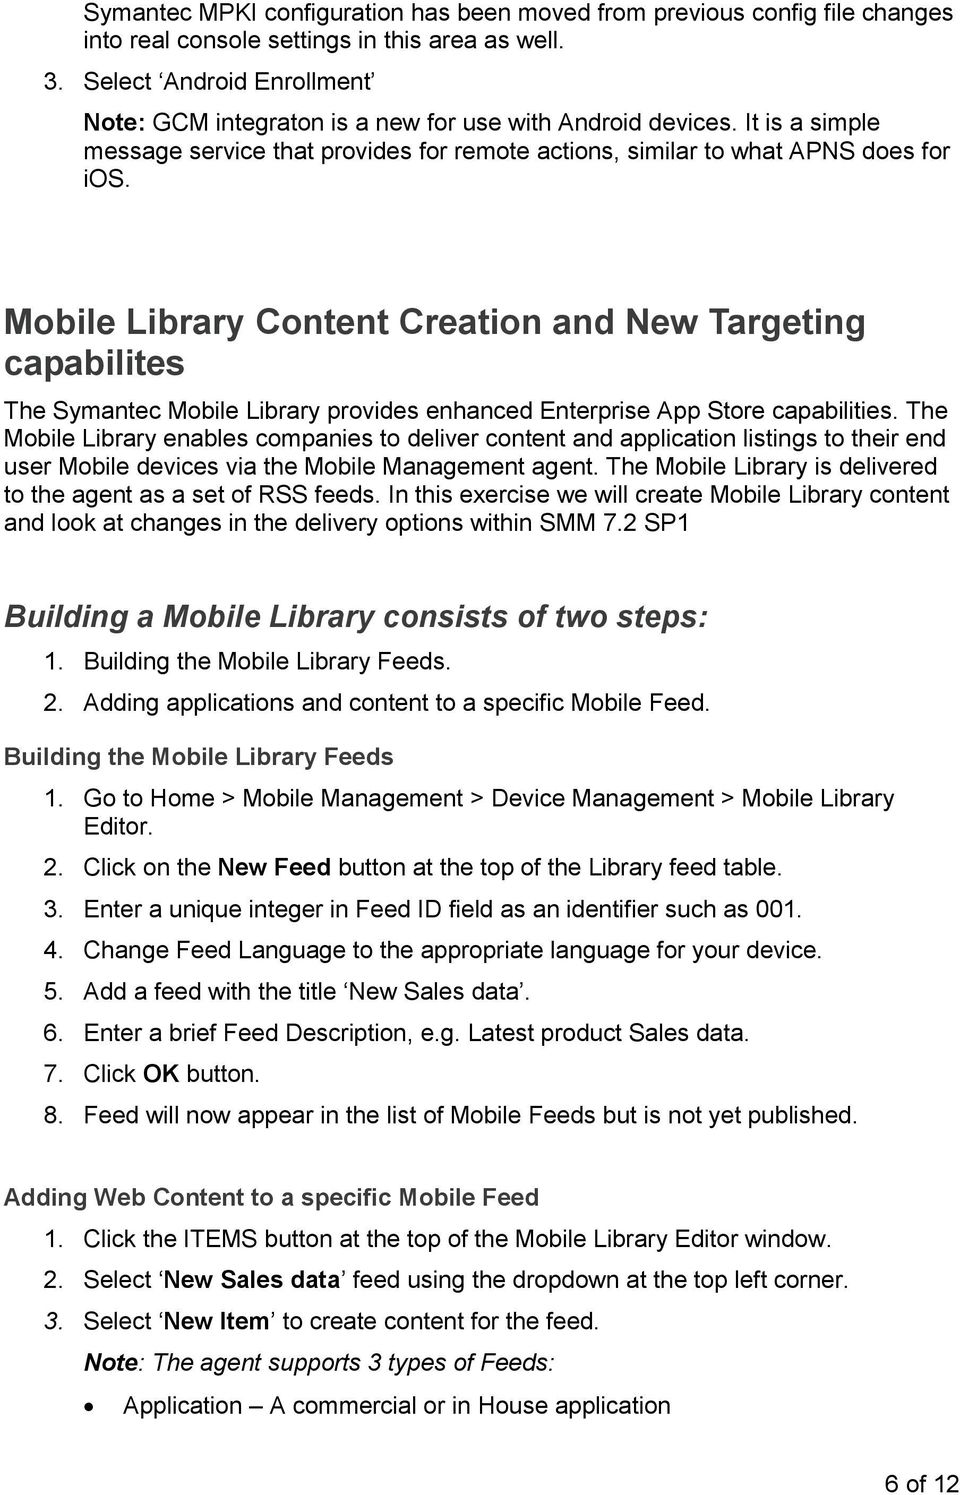 Mobile Library Content Creation and New Targeting capabilites The Symantec Mobile Library provides enhanced Enterprise App Store capabilities.